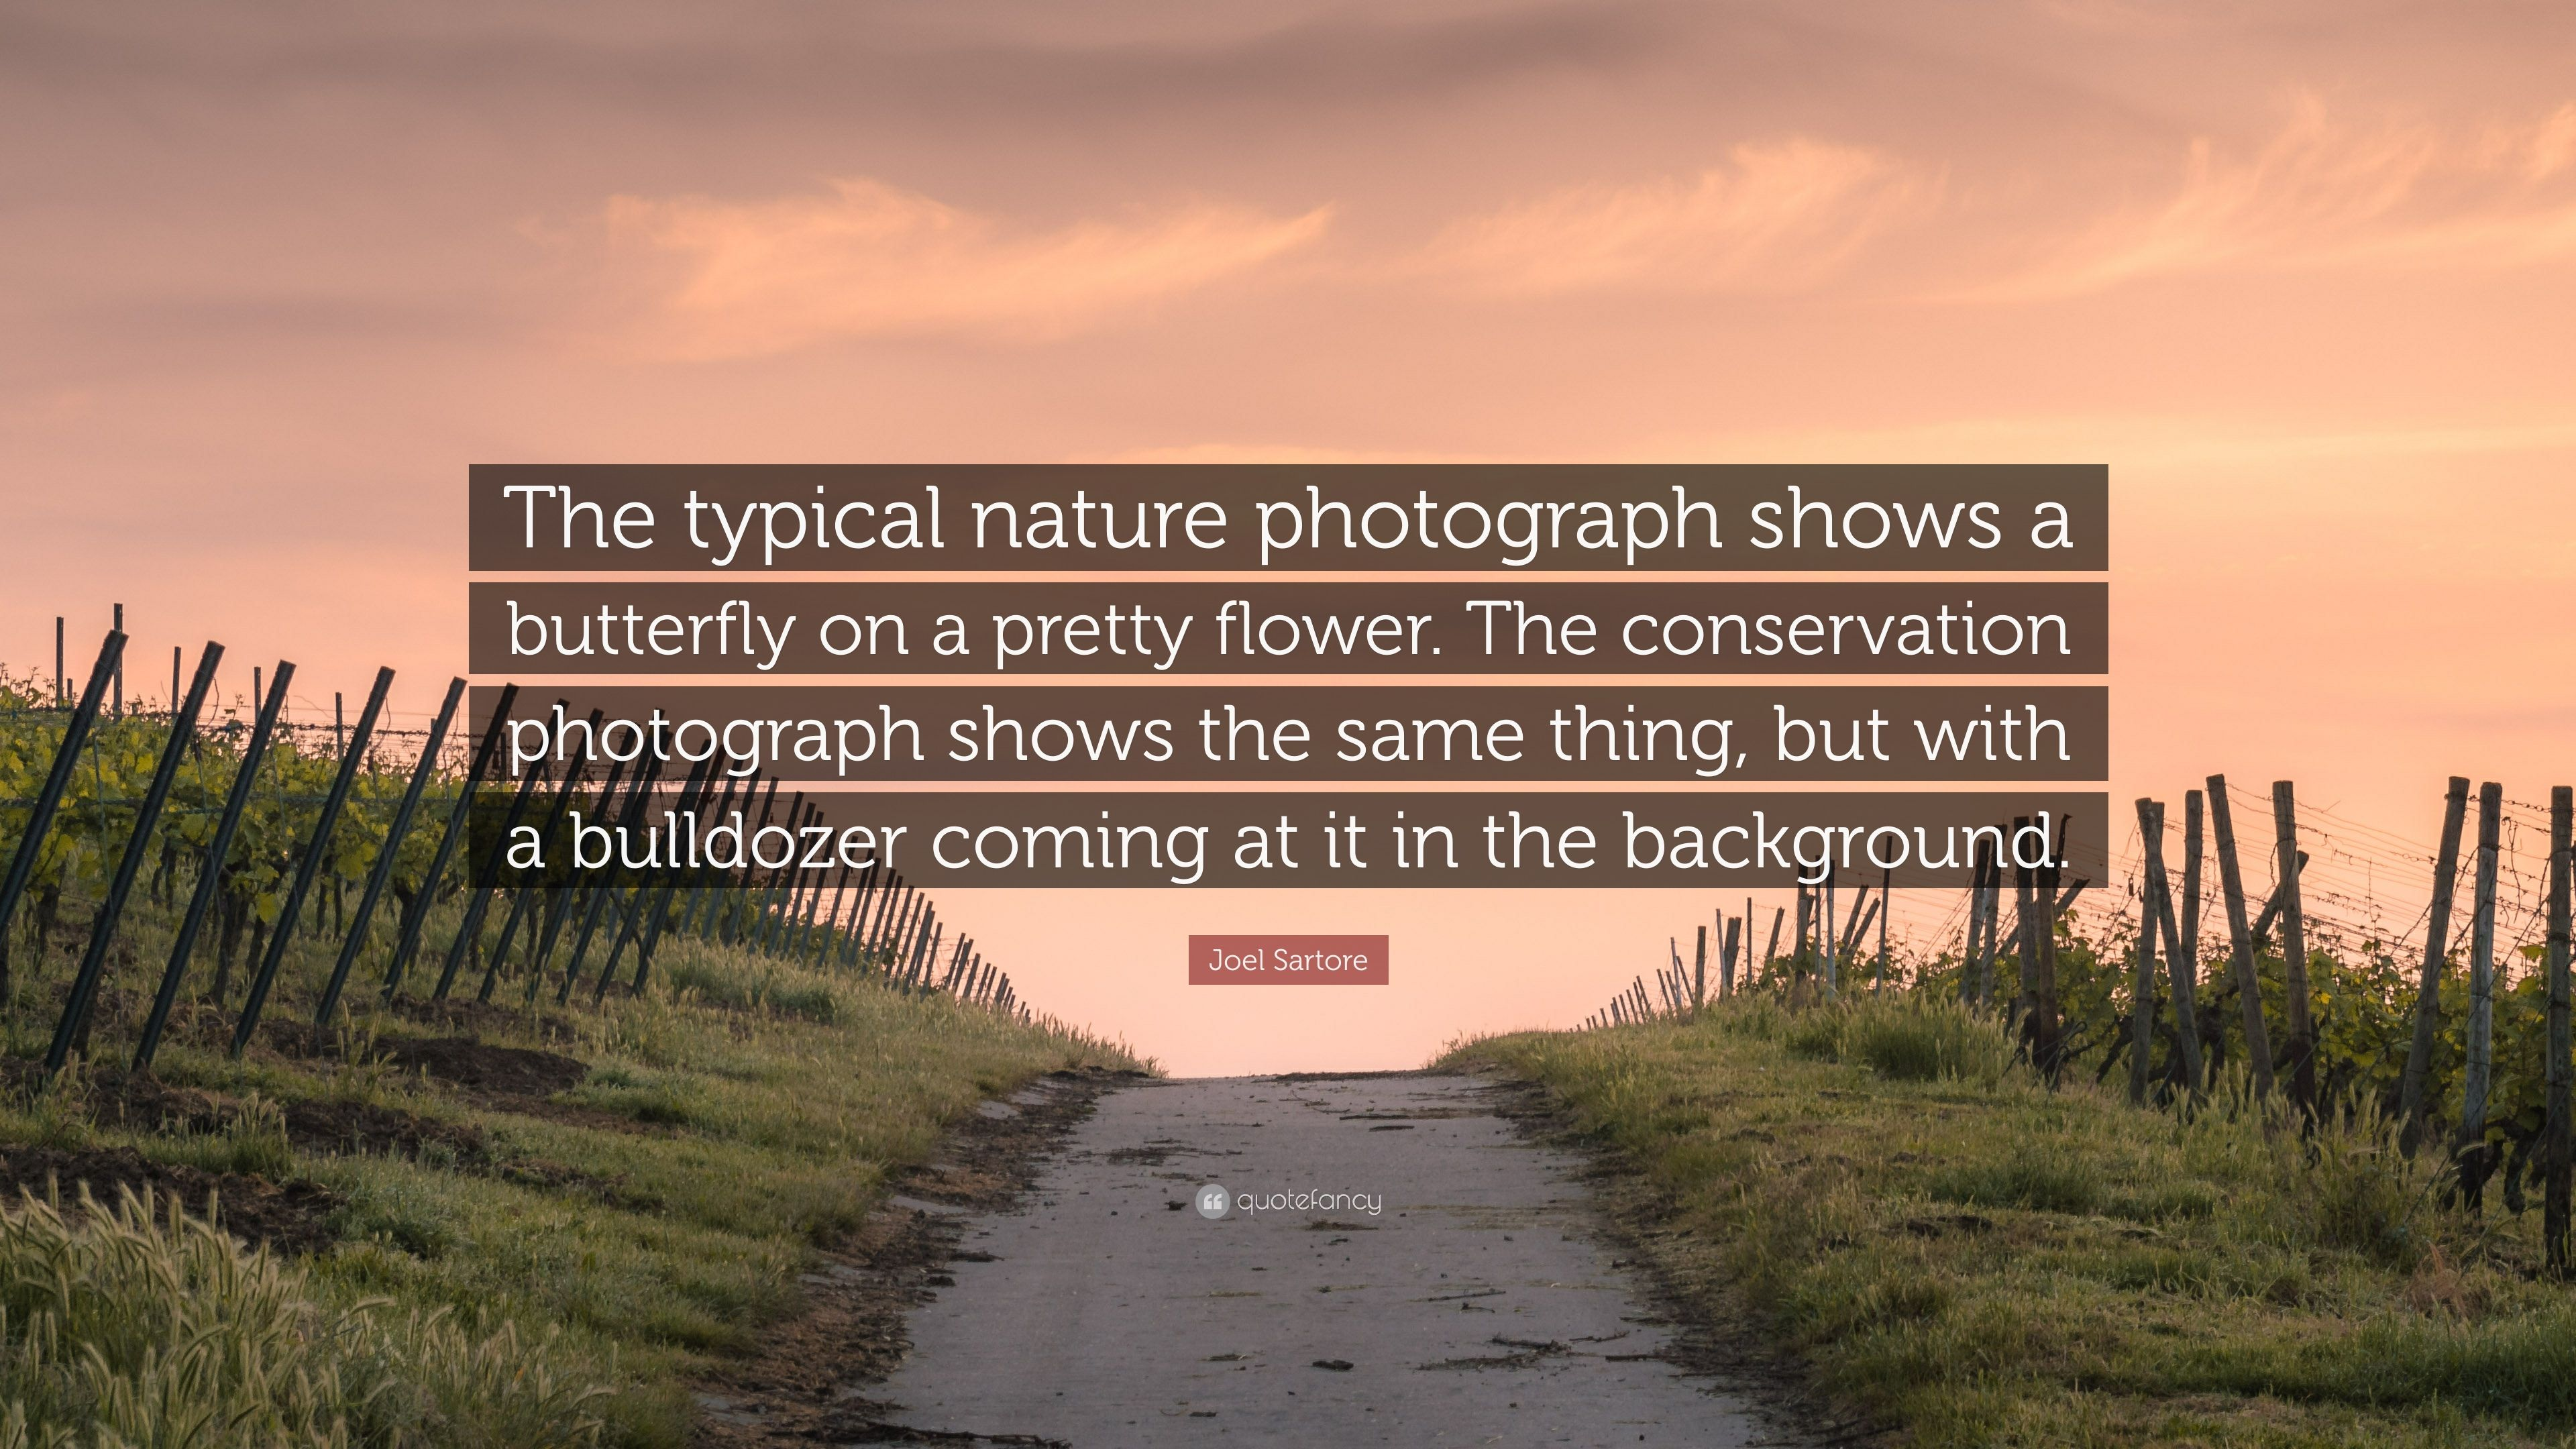 images?q=tbn:ANd9GcQh_l3eQ5xwiPy07kGEXjmjgmBKBRB7H2mRxCGhv1tFWg5c_mWT Gallery from Media Quotes For Nature Photography Now Guide @capturingmomentsphotography.net